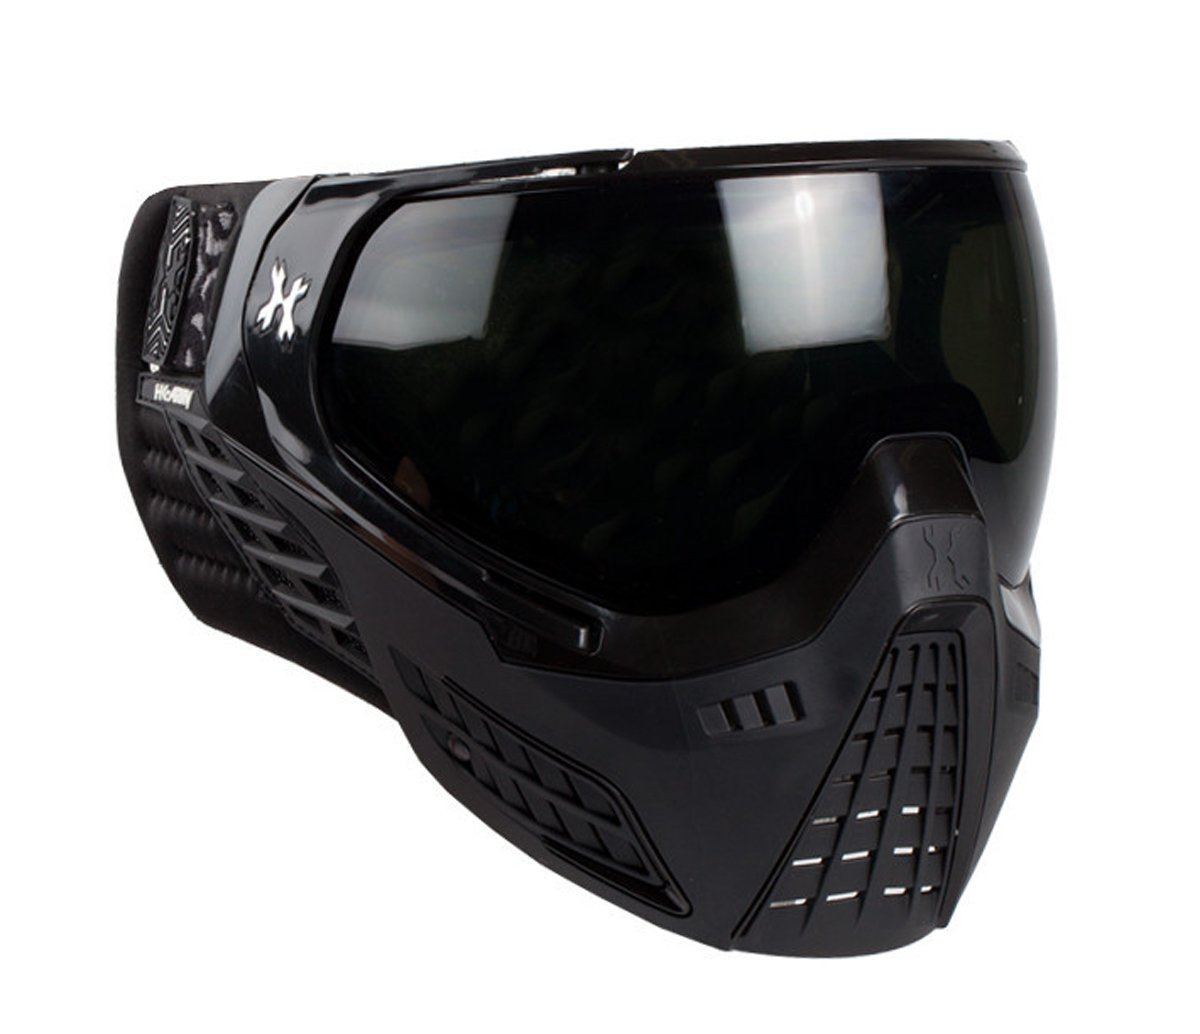 HK Army Paintball KLR Mask